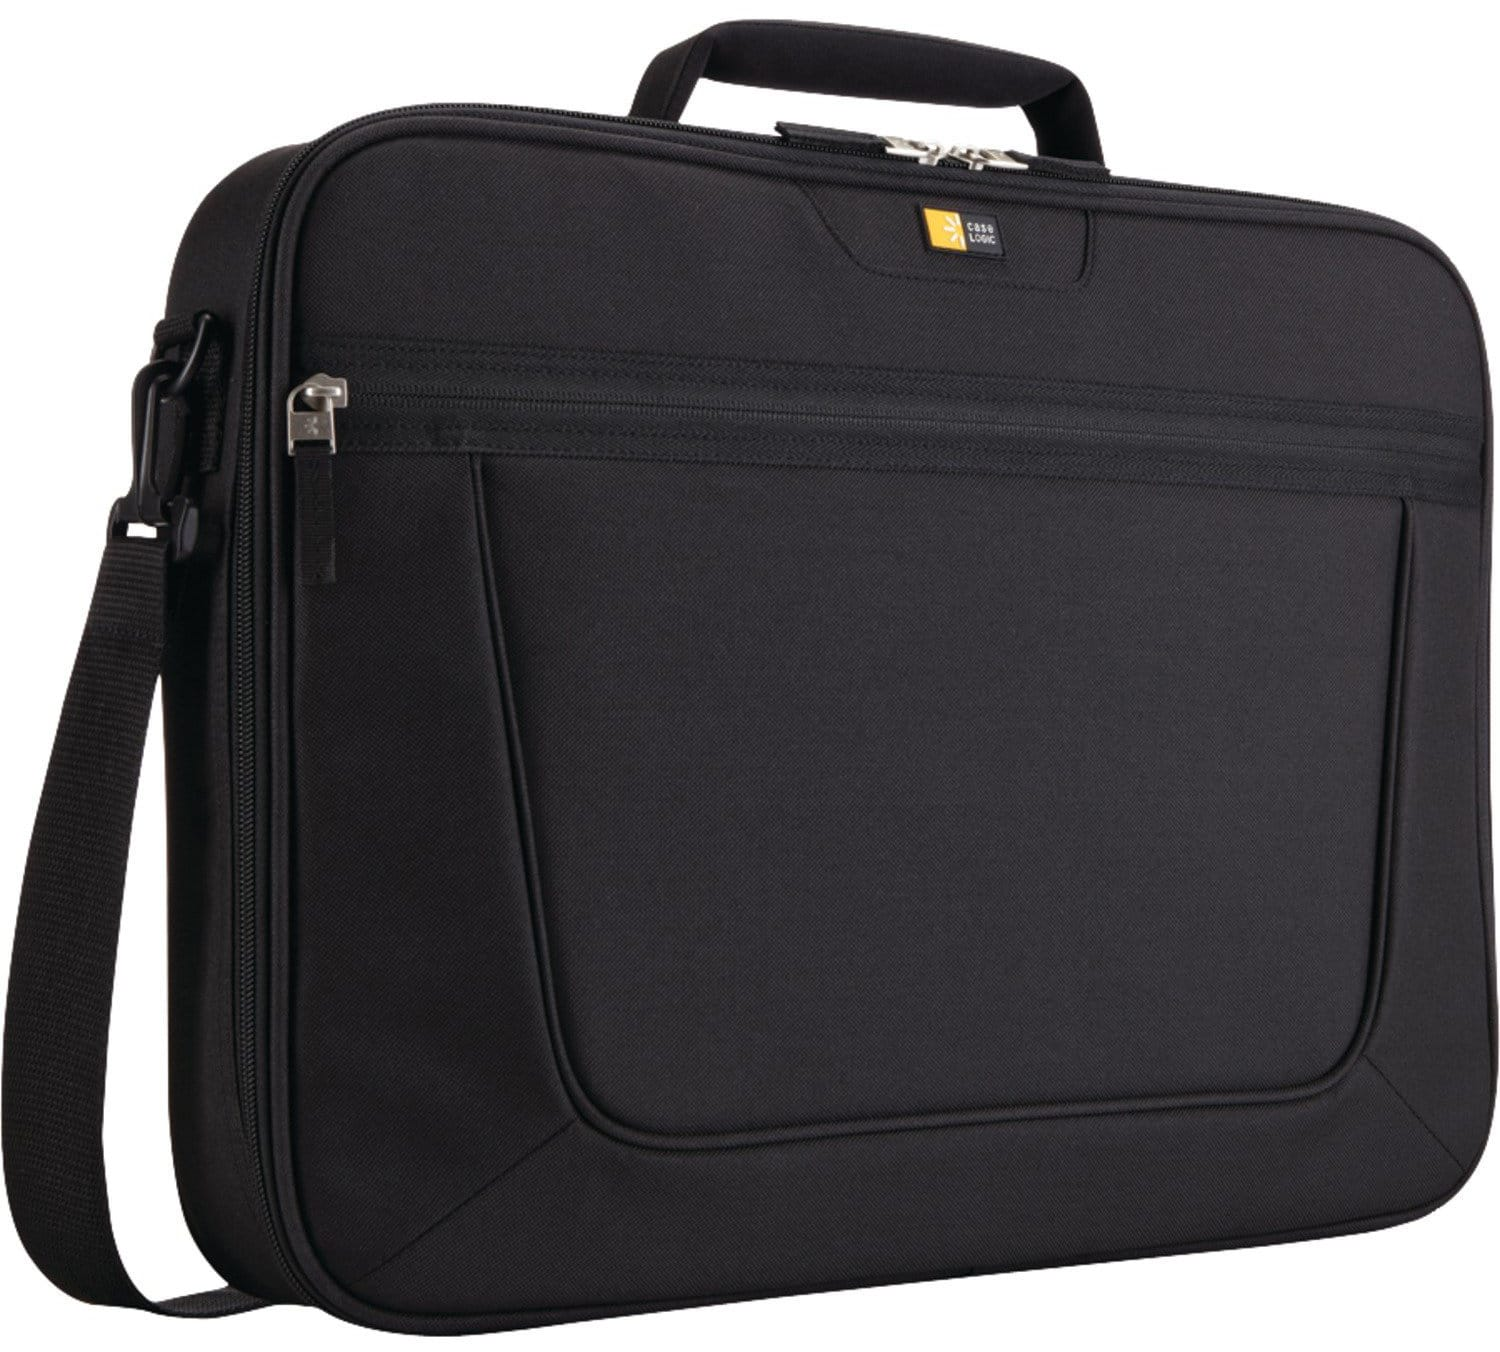 Top 10 Best Laptop Briefcases Reviewed In 2016